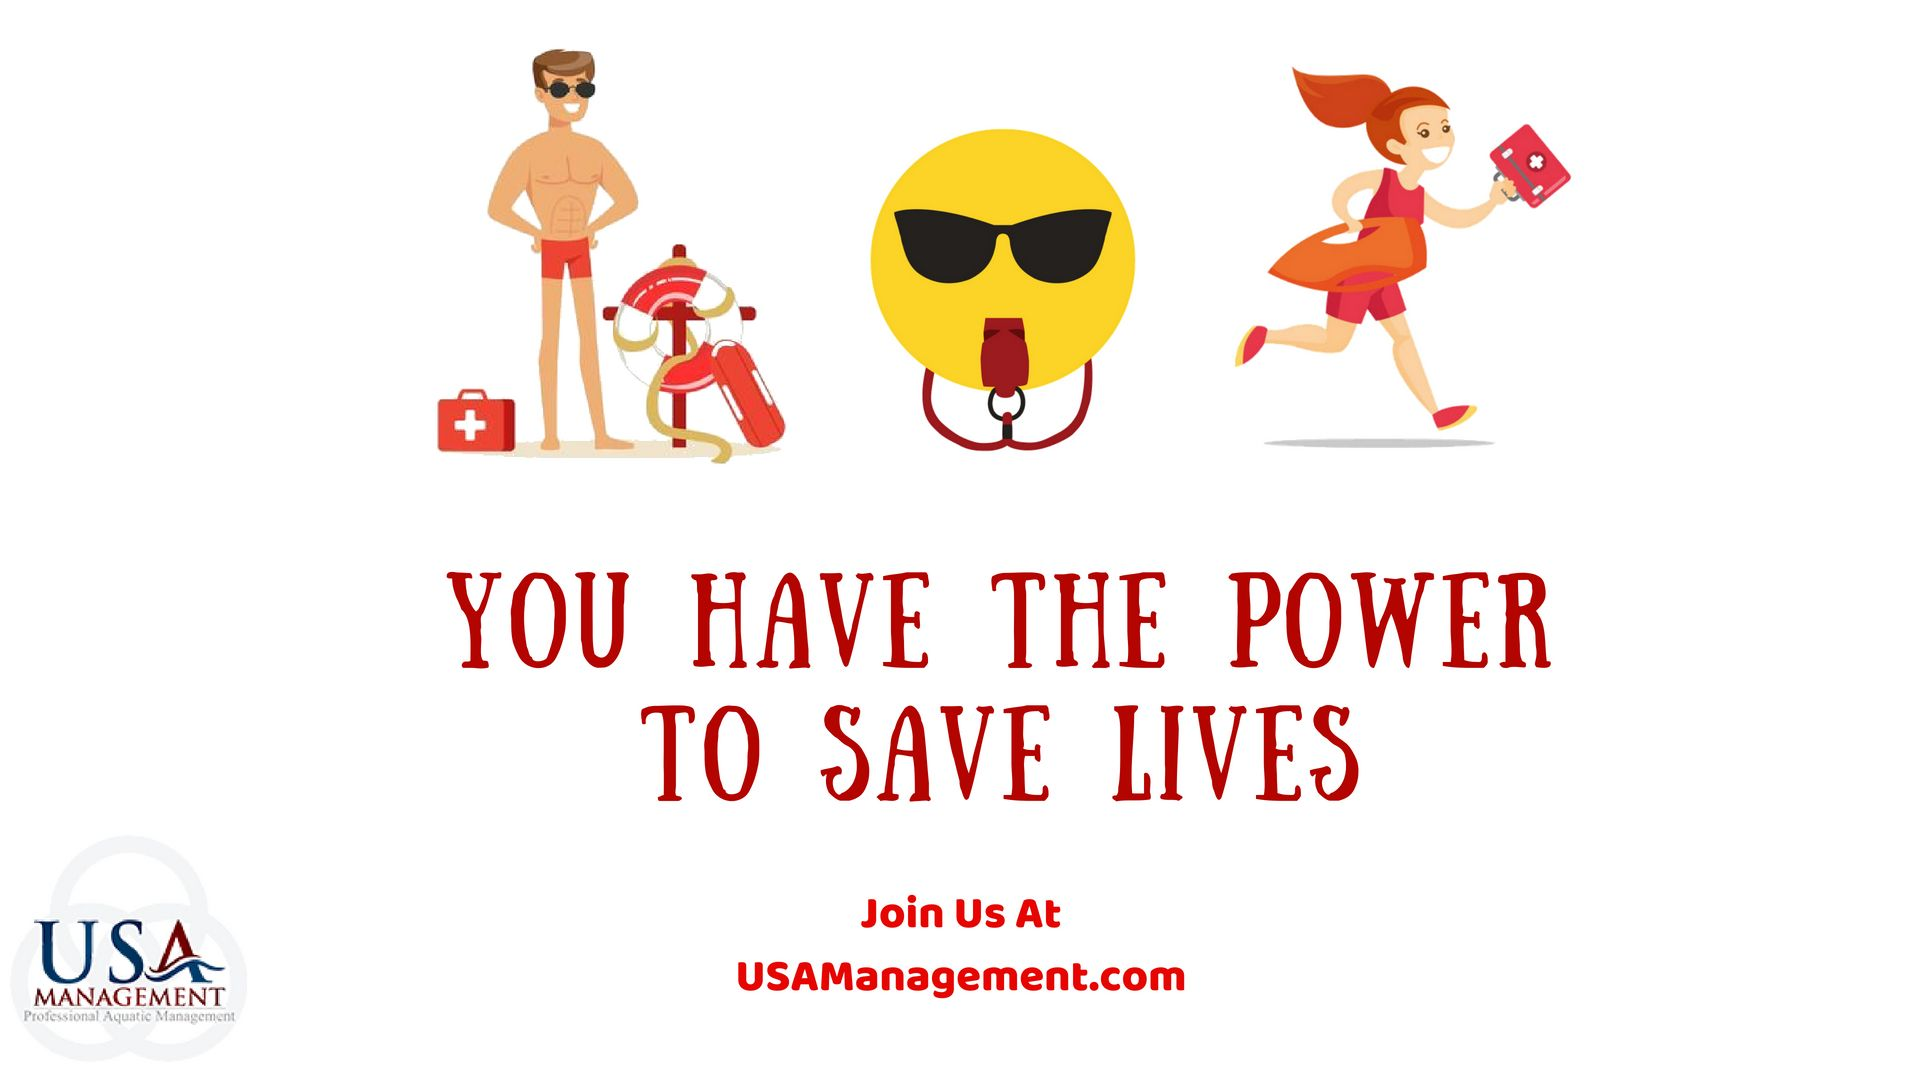 You have the power to save lives usamanagement You save